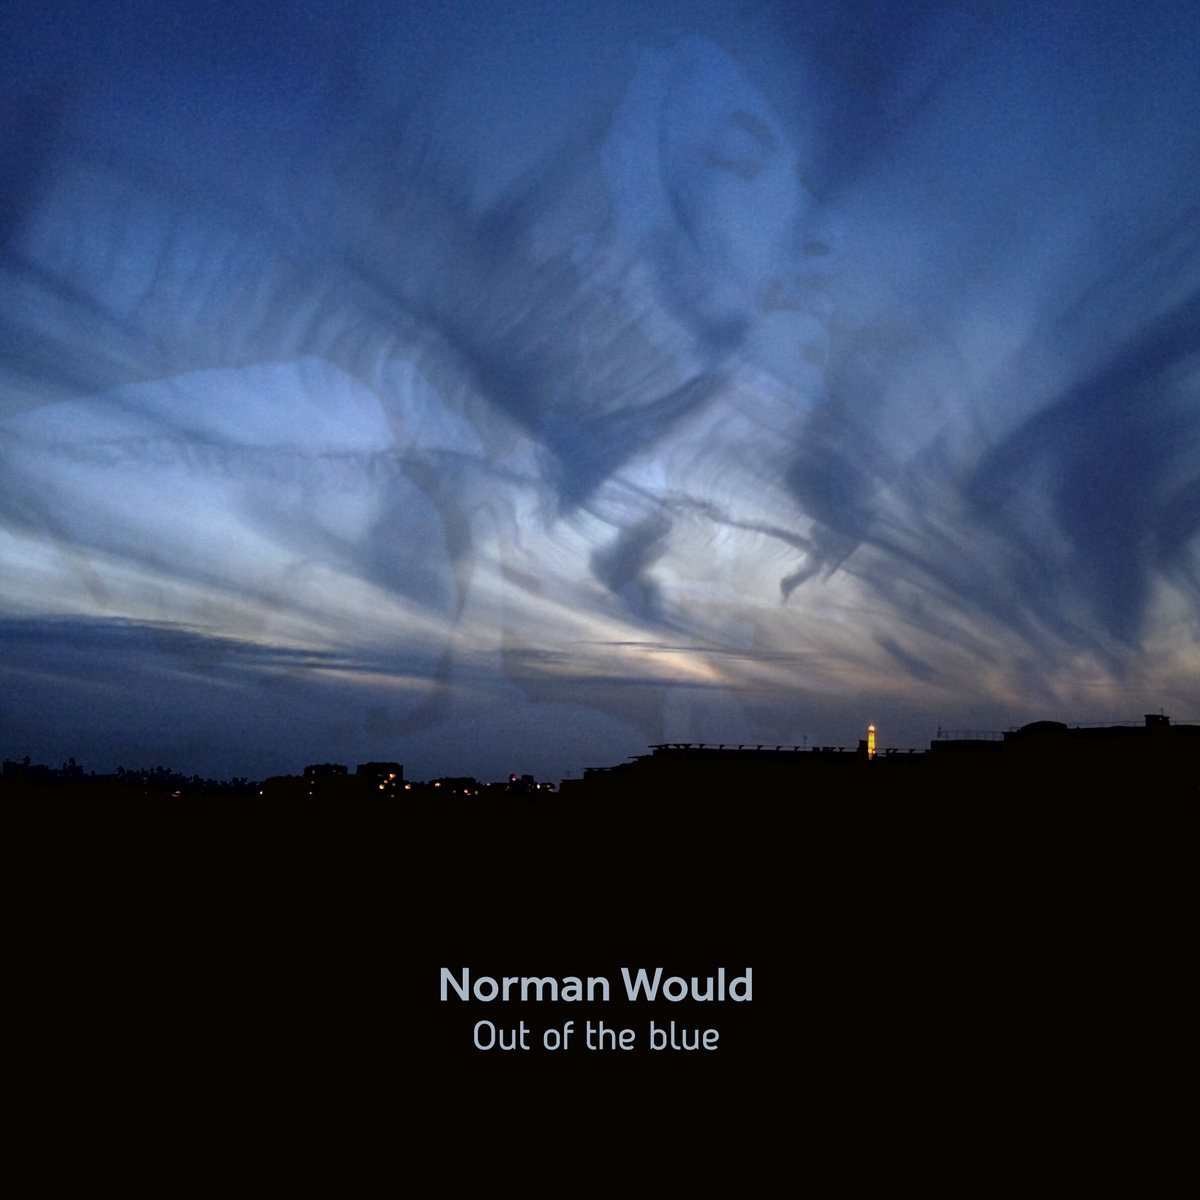 Norman Would – Out Of The Blue